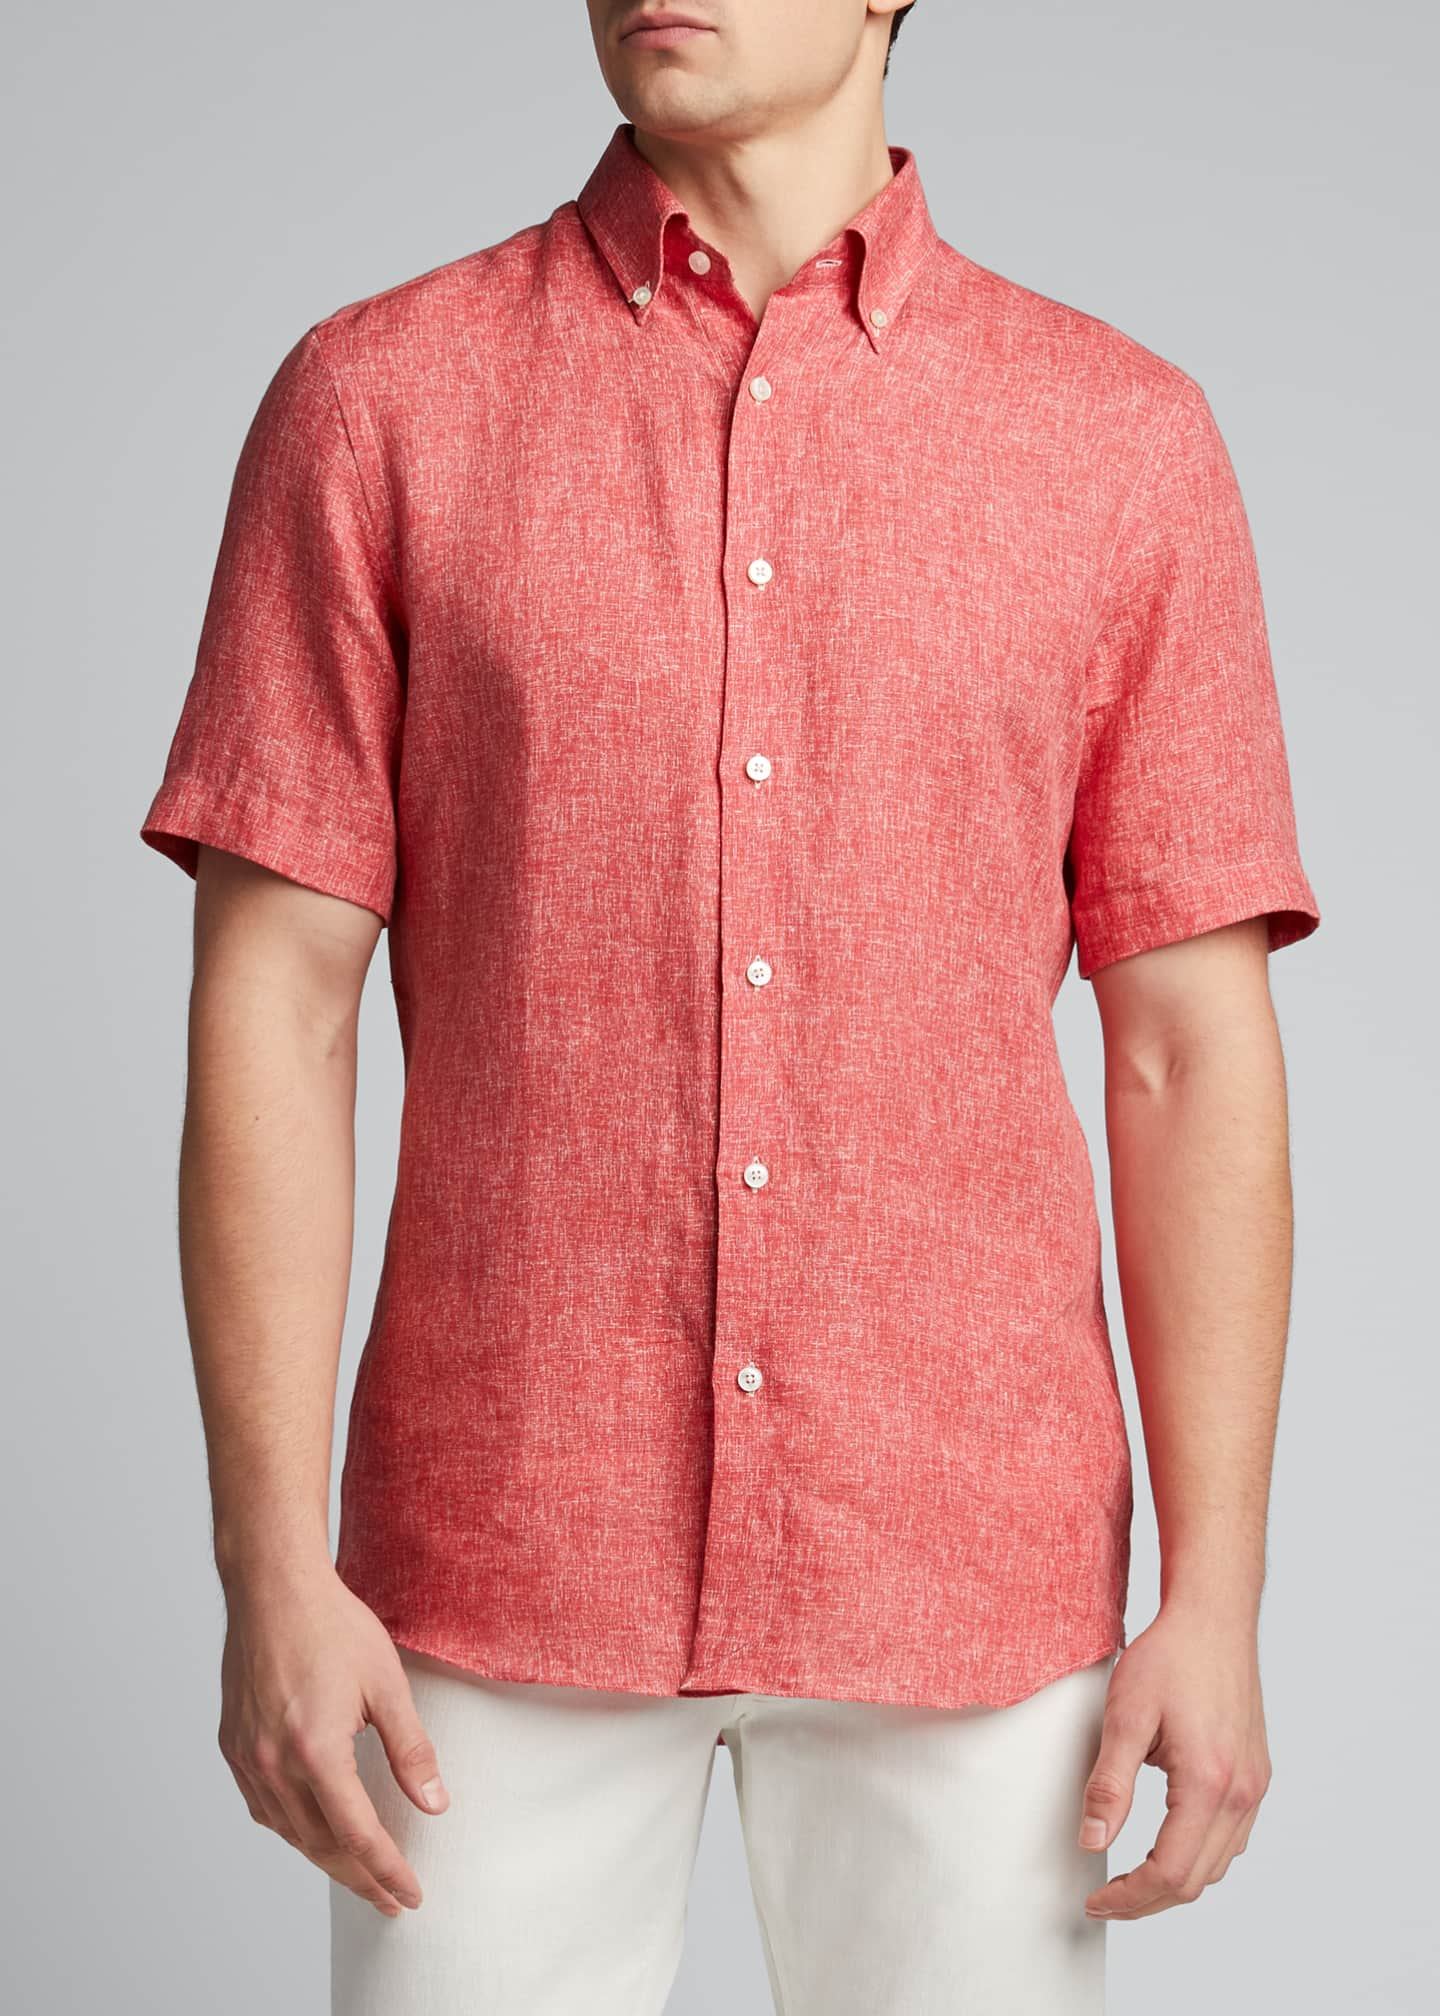 Image 3 of 5: Men's Solid Yarn-Dyed Linen Short-Sleeve Sport Shirt